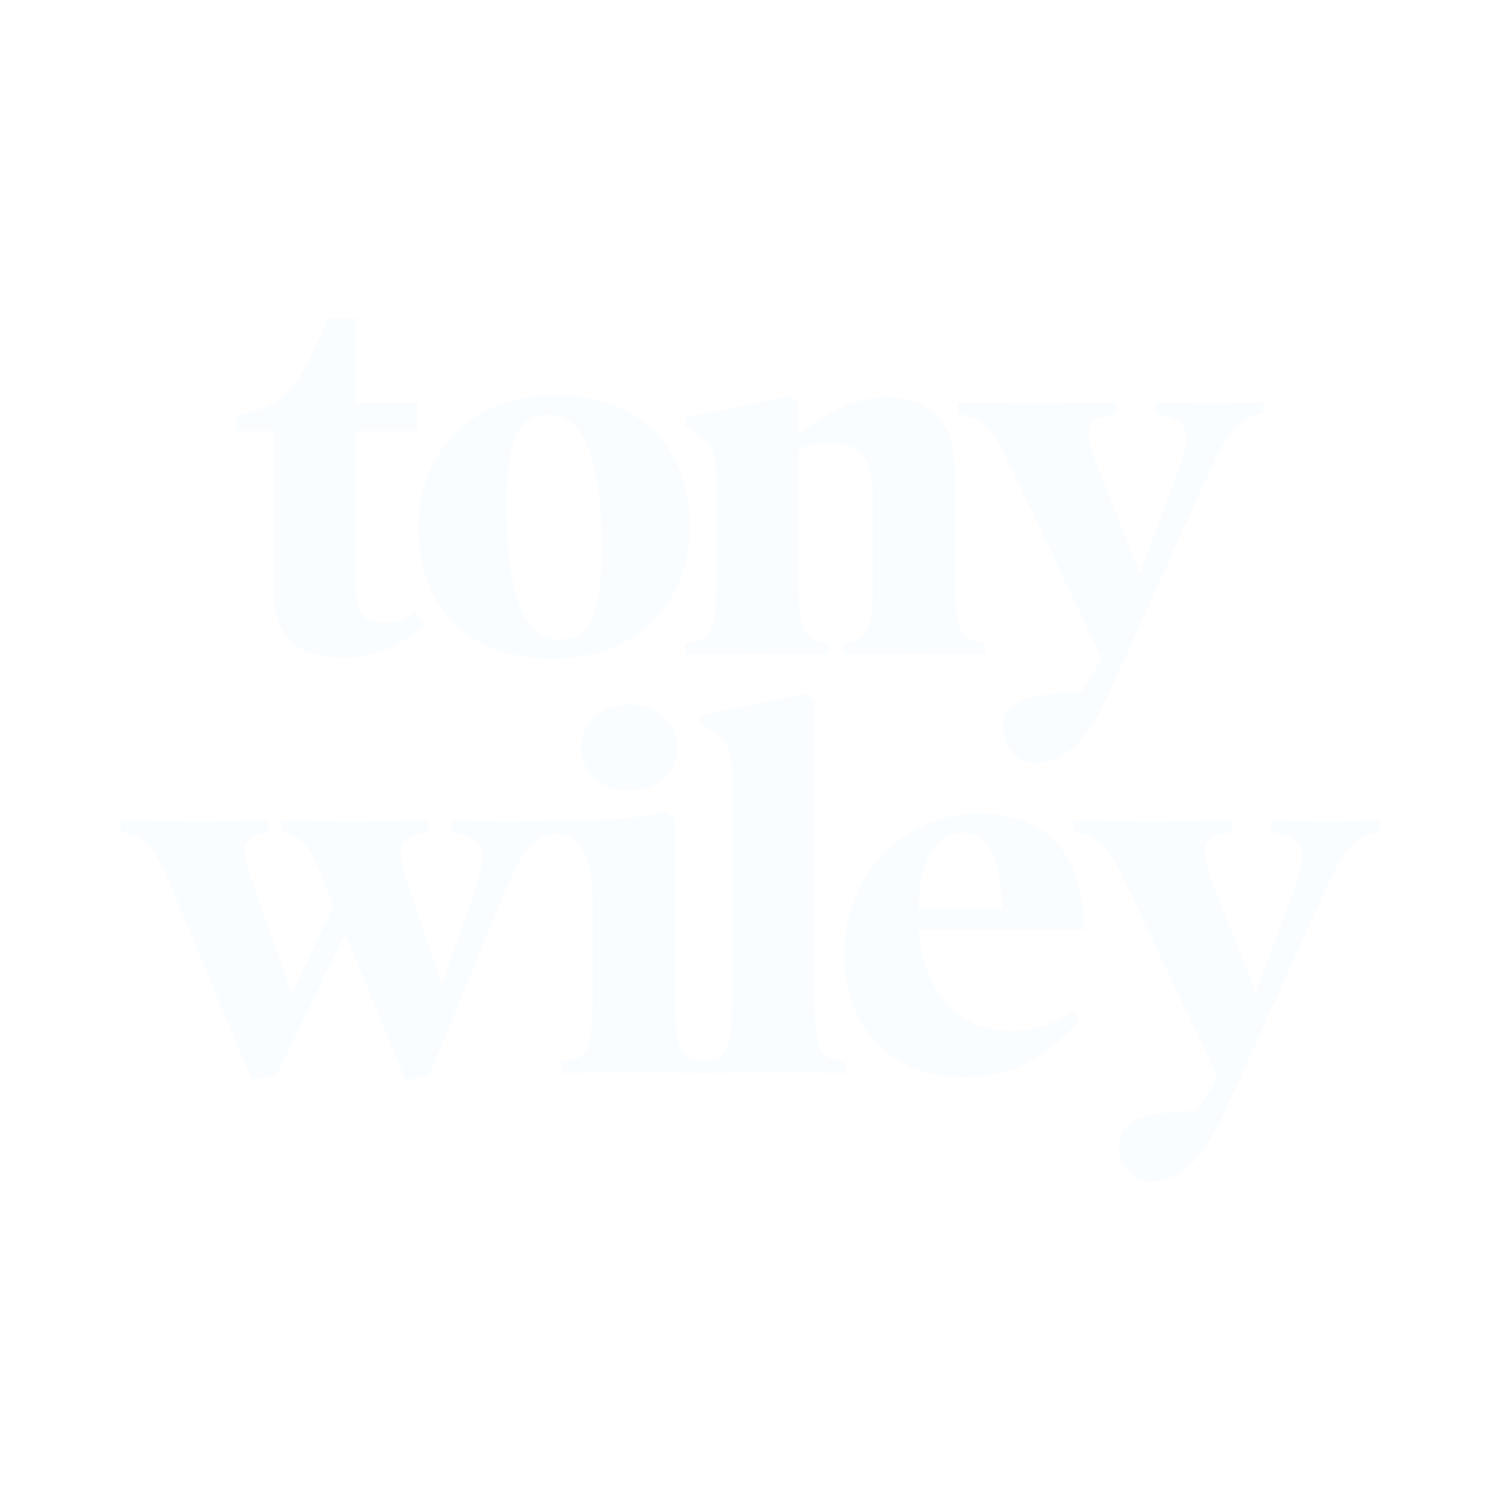 Tony Wiley